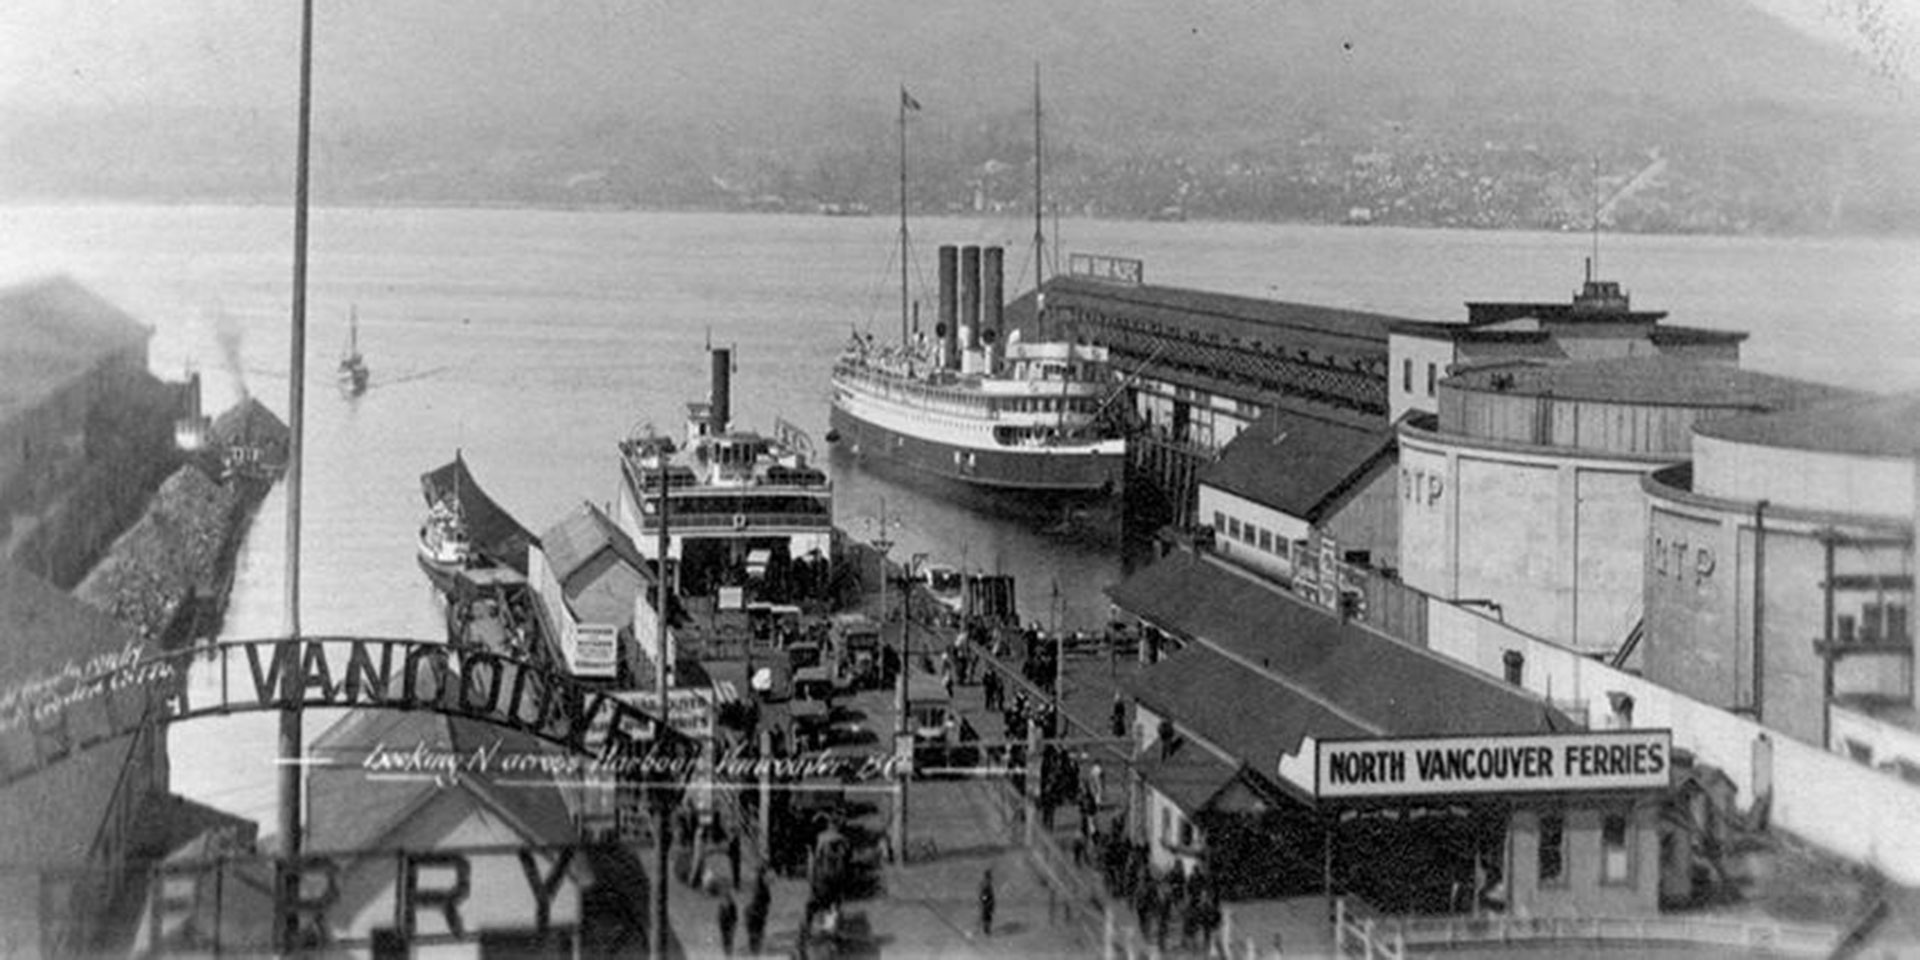 Vancouver Ferry Terminal 1942